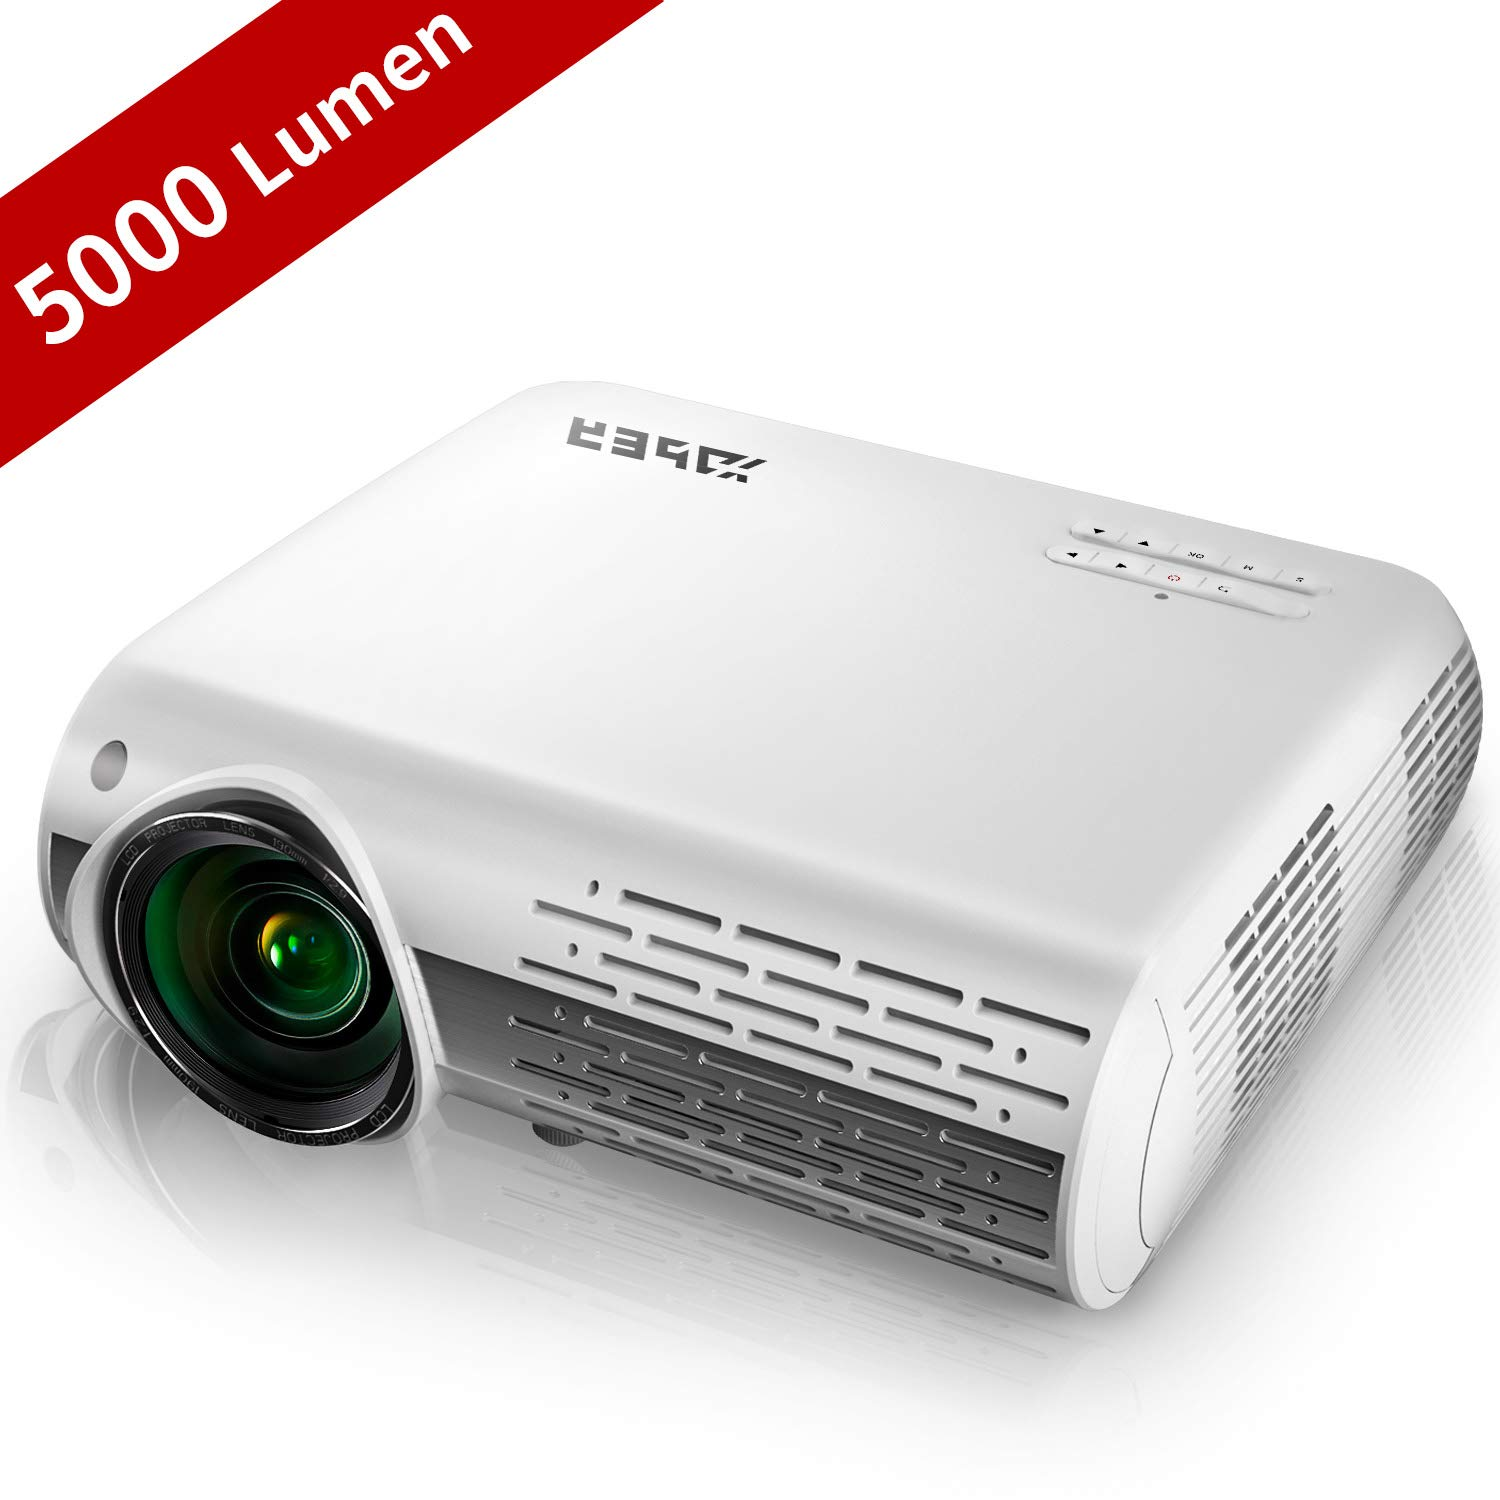 YABER Native 1080P Projector 5000 Lumens Full HD Video Projector (1920 x 1080), ±50° 4D Keystone Correction,LCD LED Home & Outdoor Projector Compatible with iPhone,Android,PC,TV Box,PS4